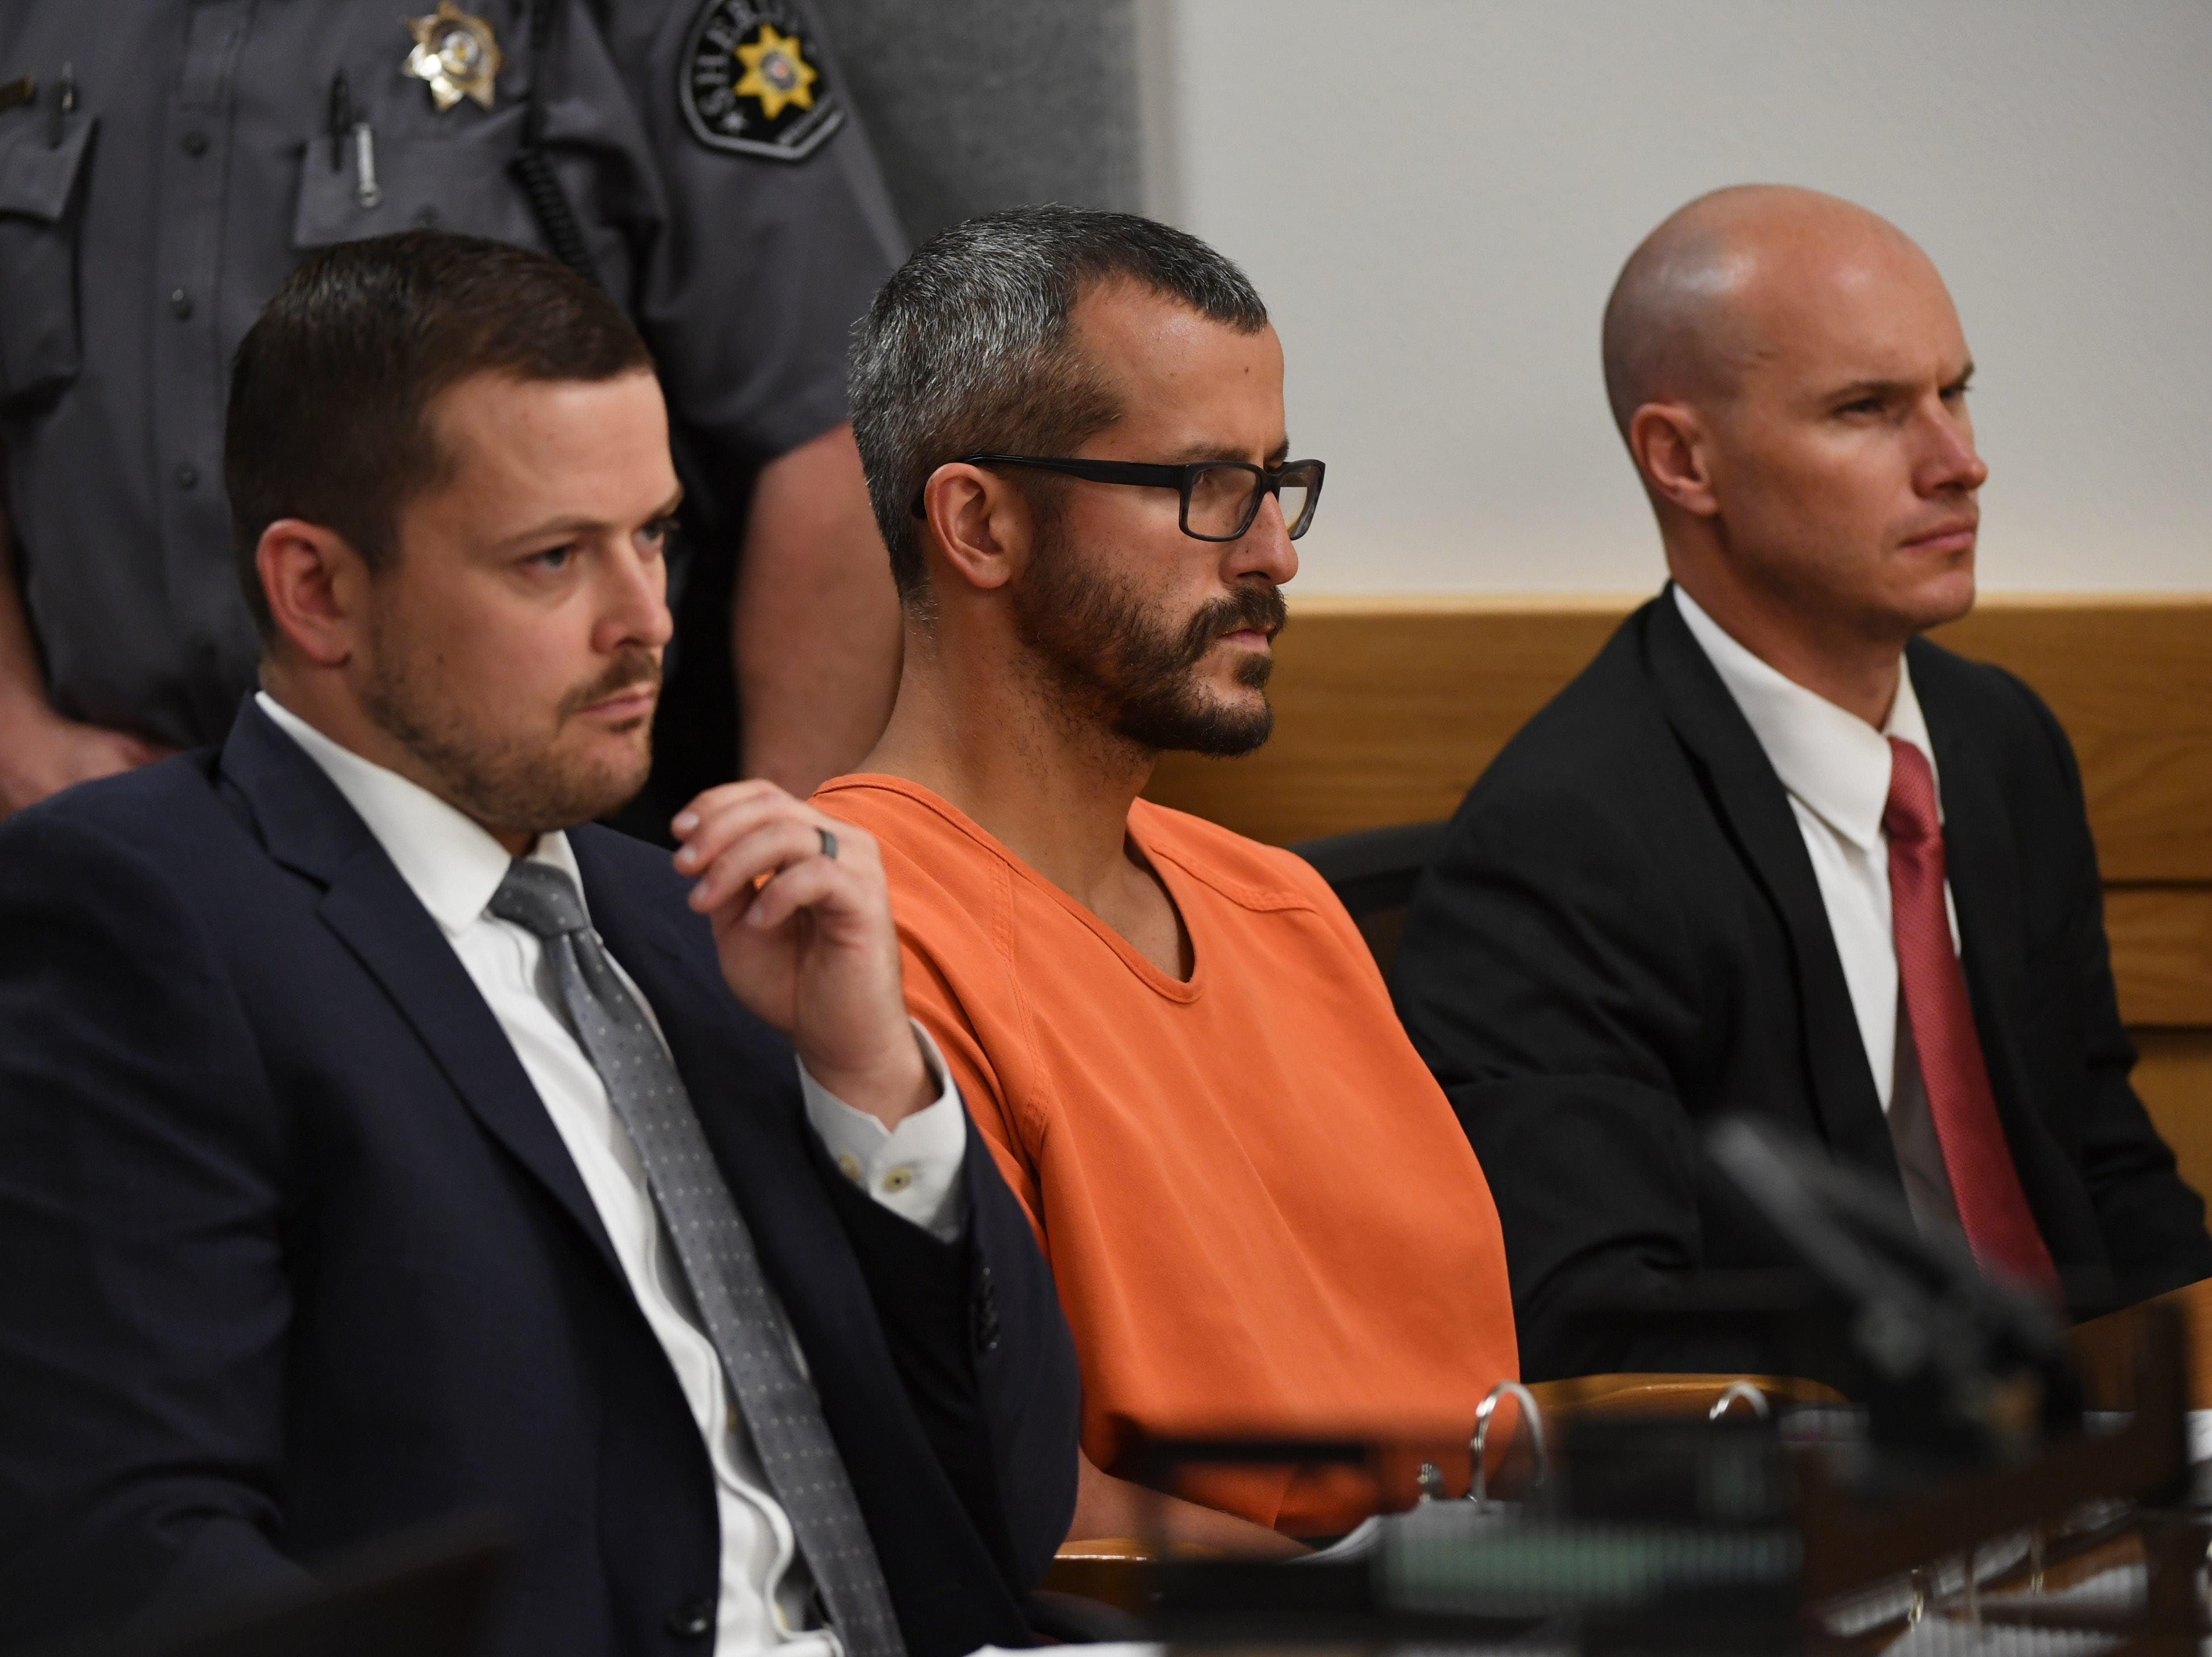 Christopher Watts murder sentencing: Here's what we know